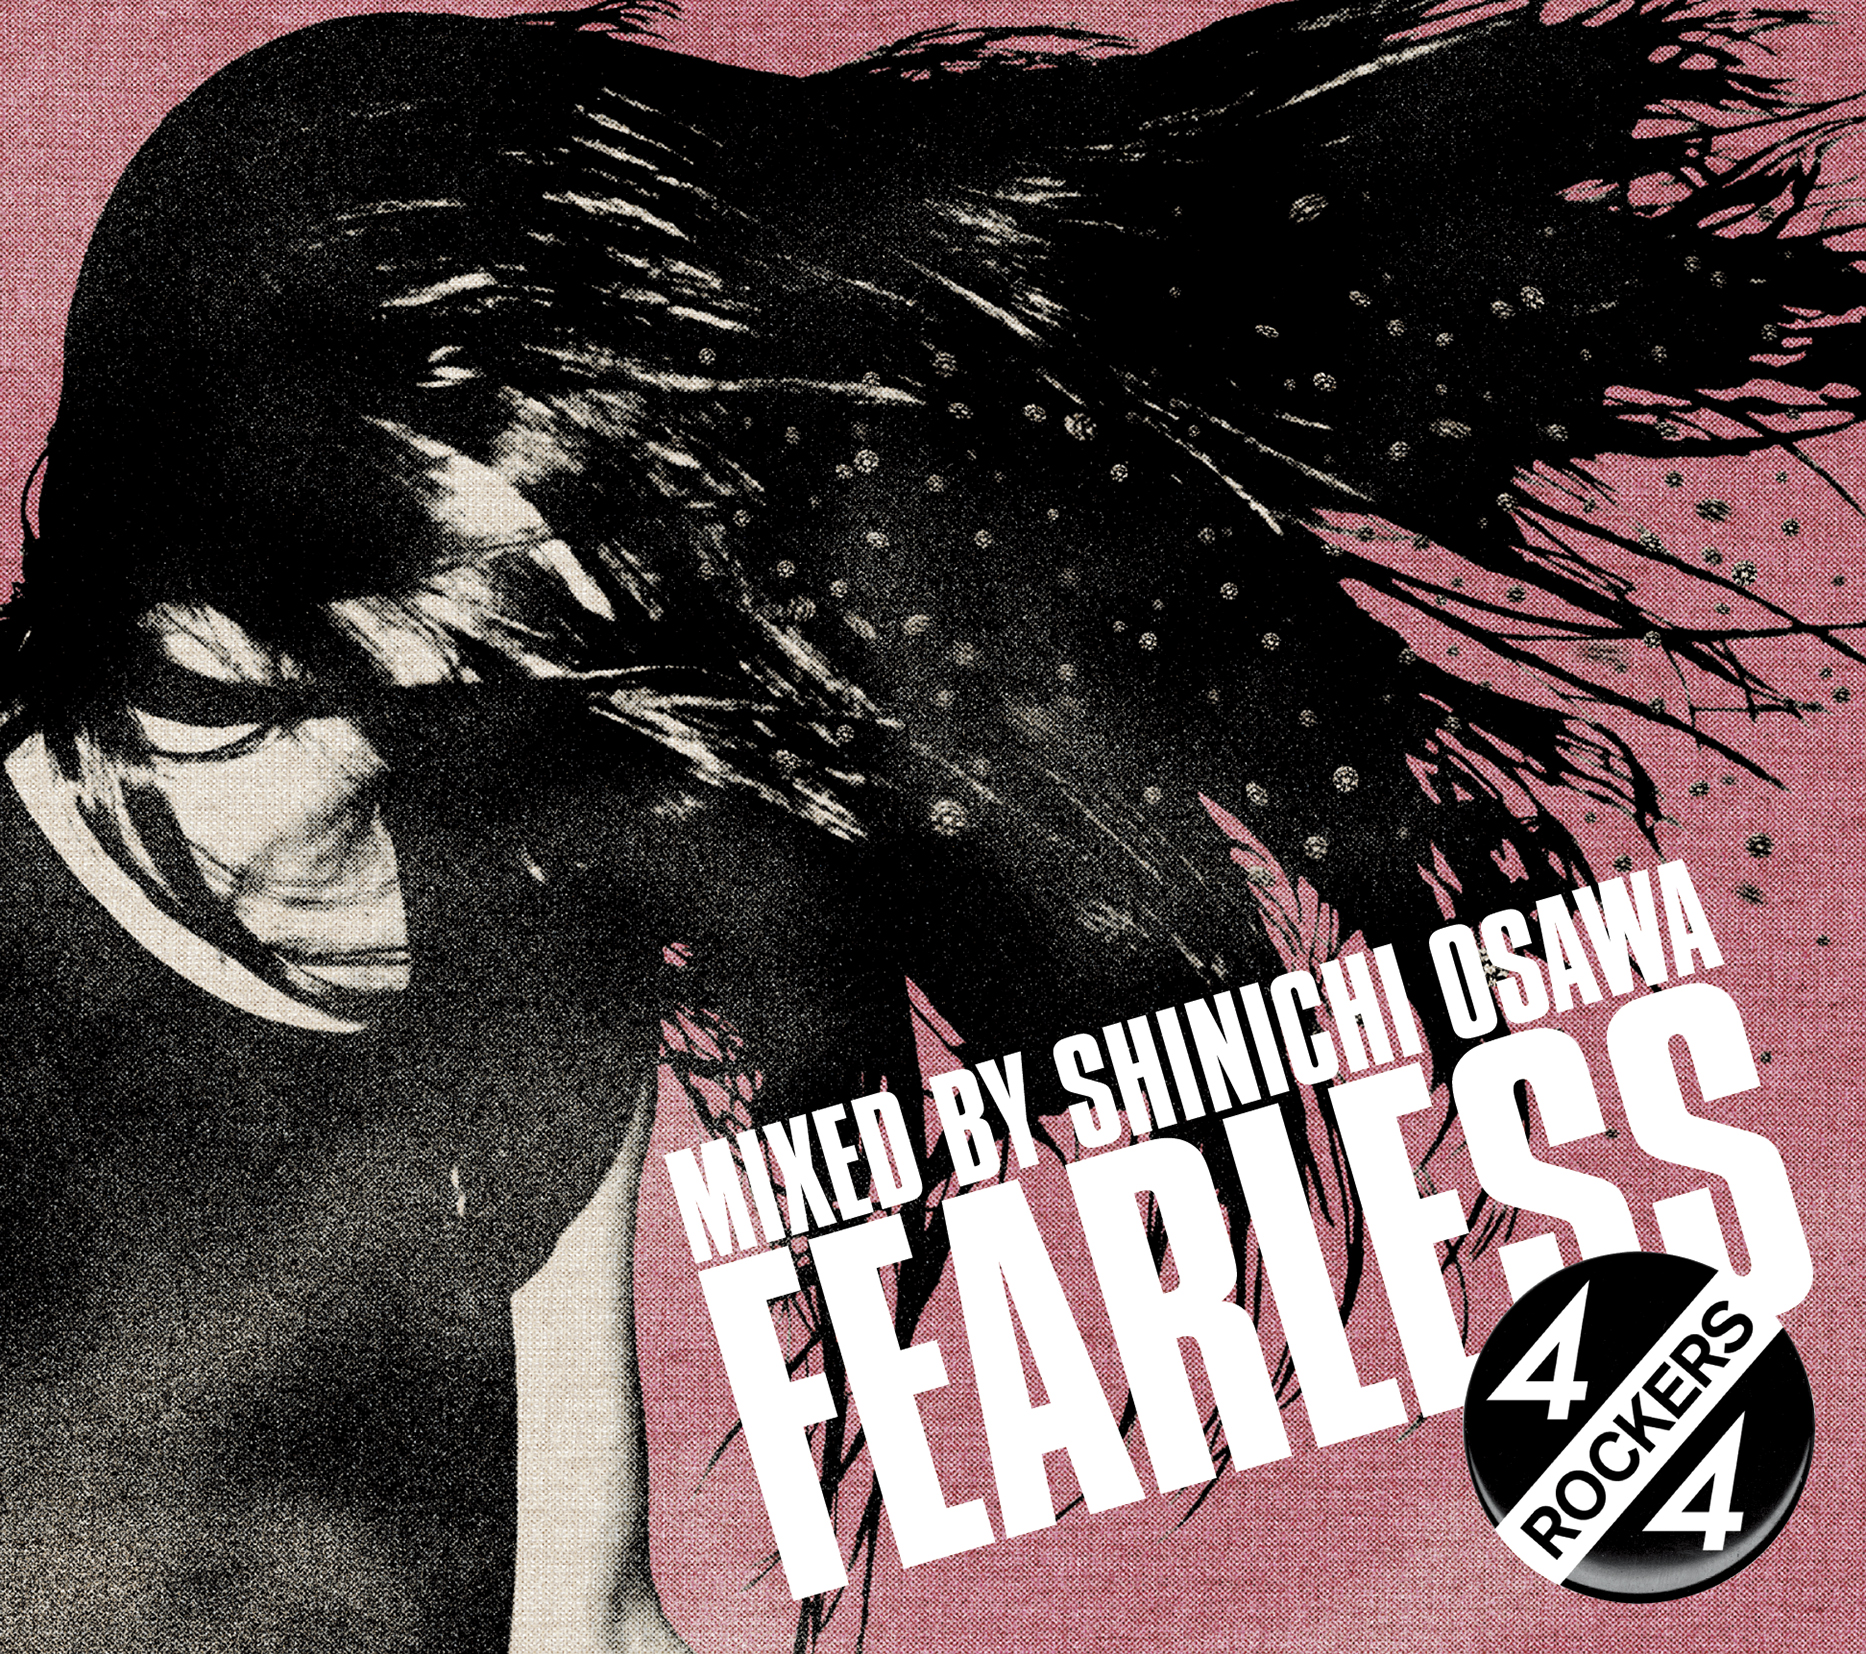 V.A.<br>「FEARLESS 4/4 ROCKERS Mixed by Shinichi Osawa」